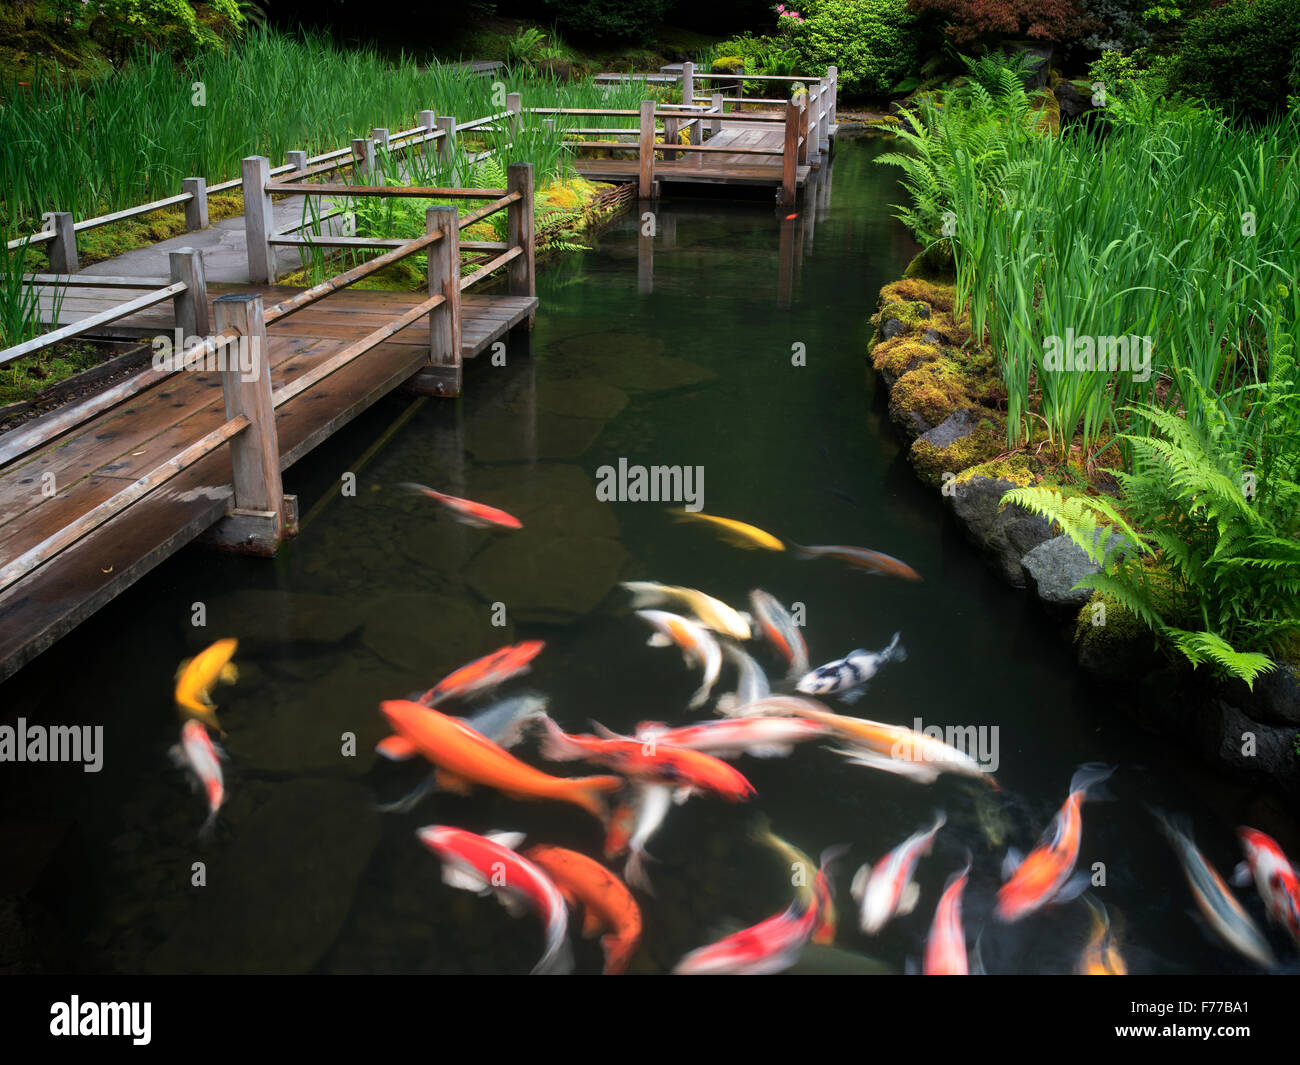 Koi and iris beds path japanese gardens oregon stock for Portland japanese garden koi